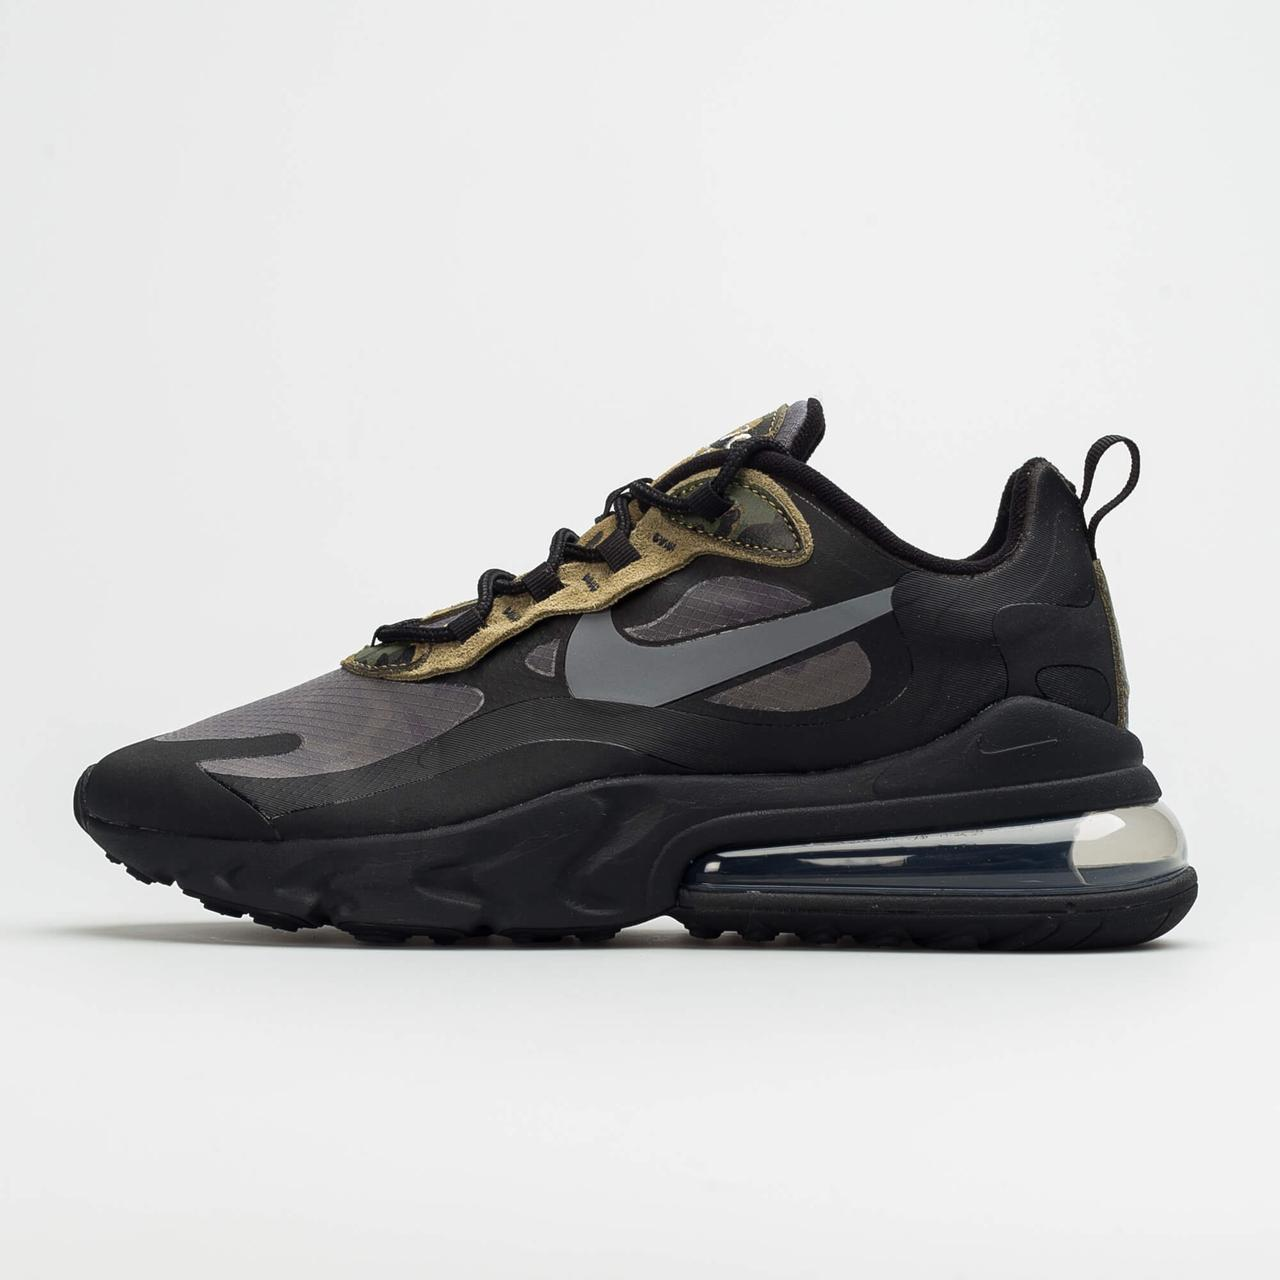 Кроссовки Nike Air Max 270 React. (CT5528-001) Оригинал